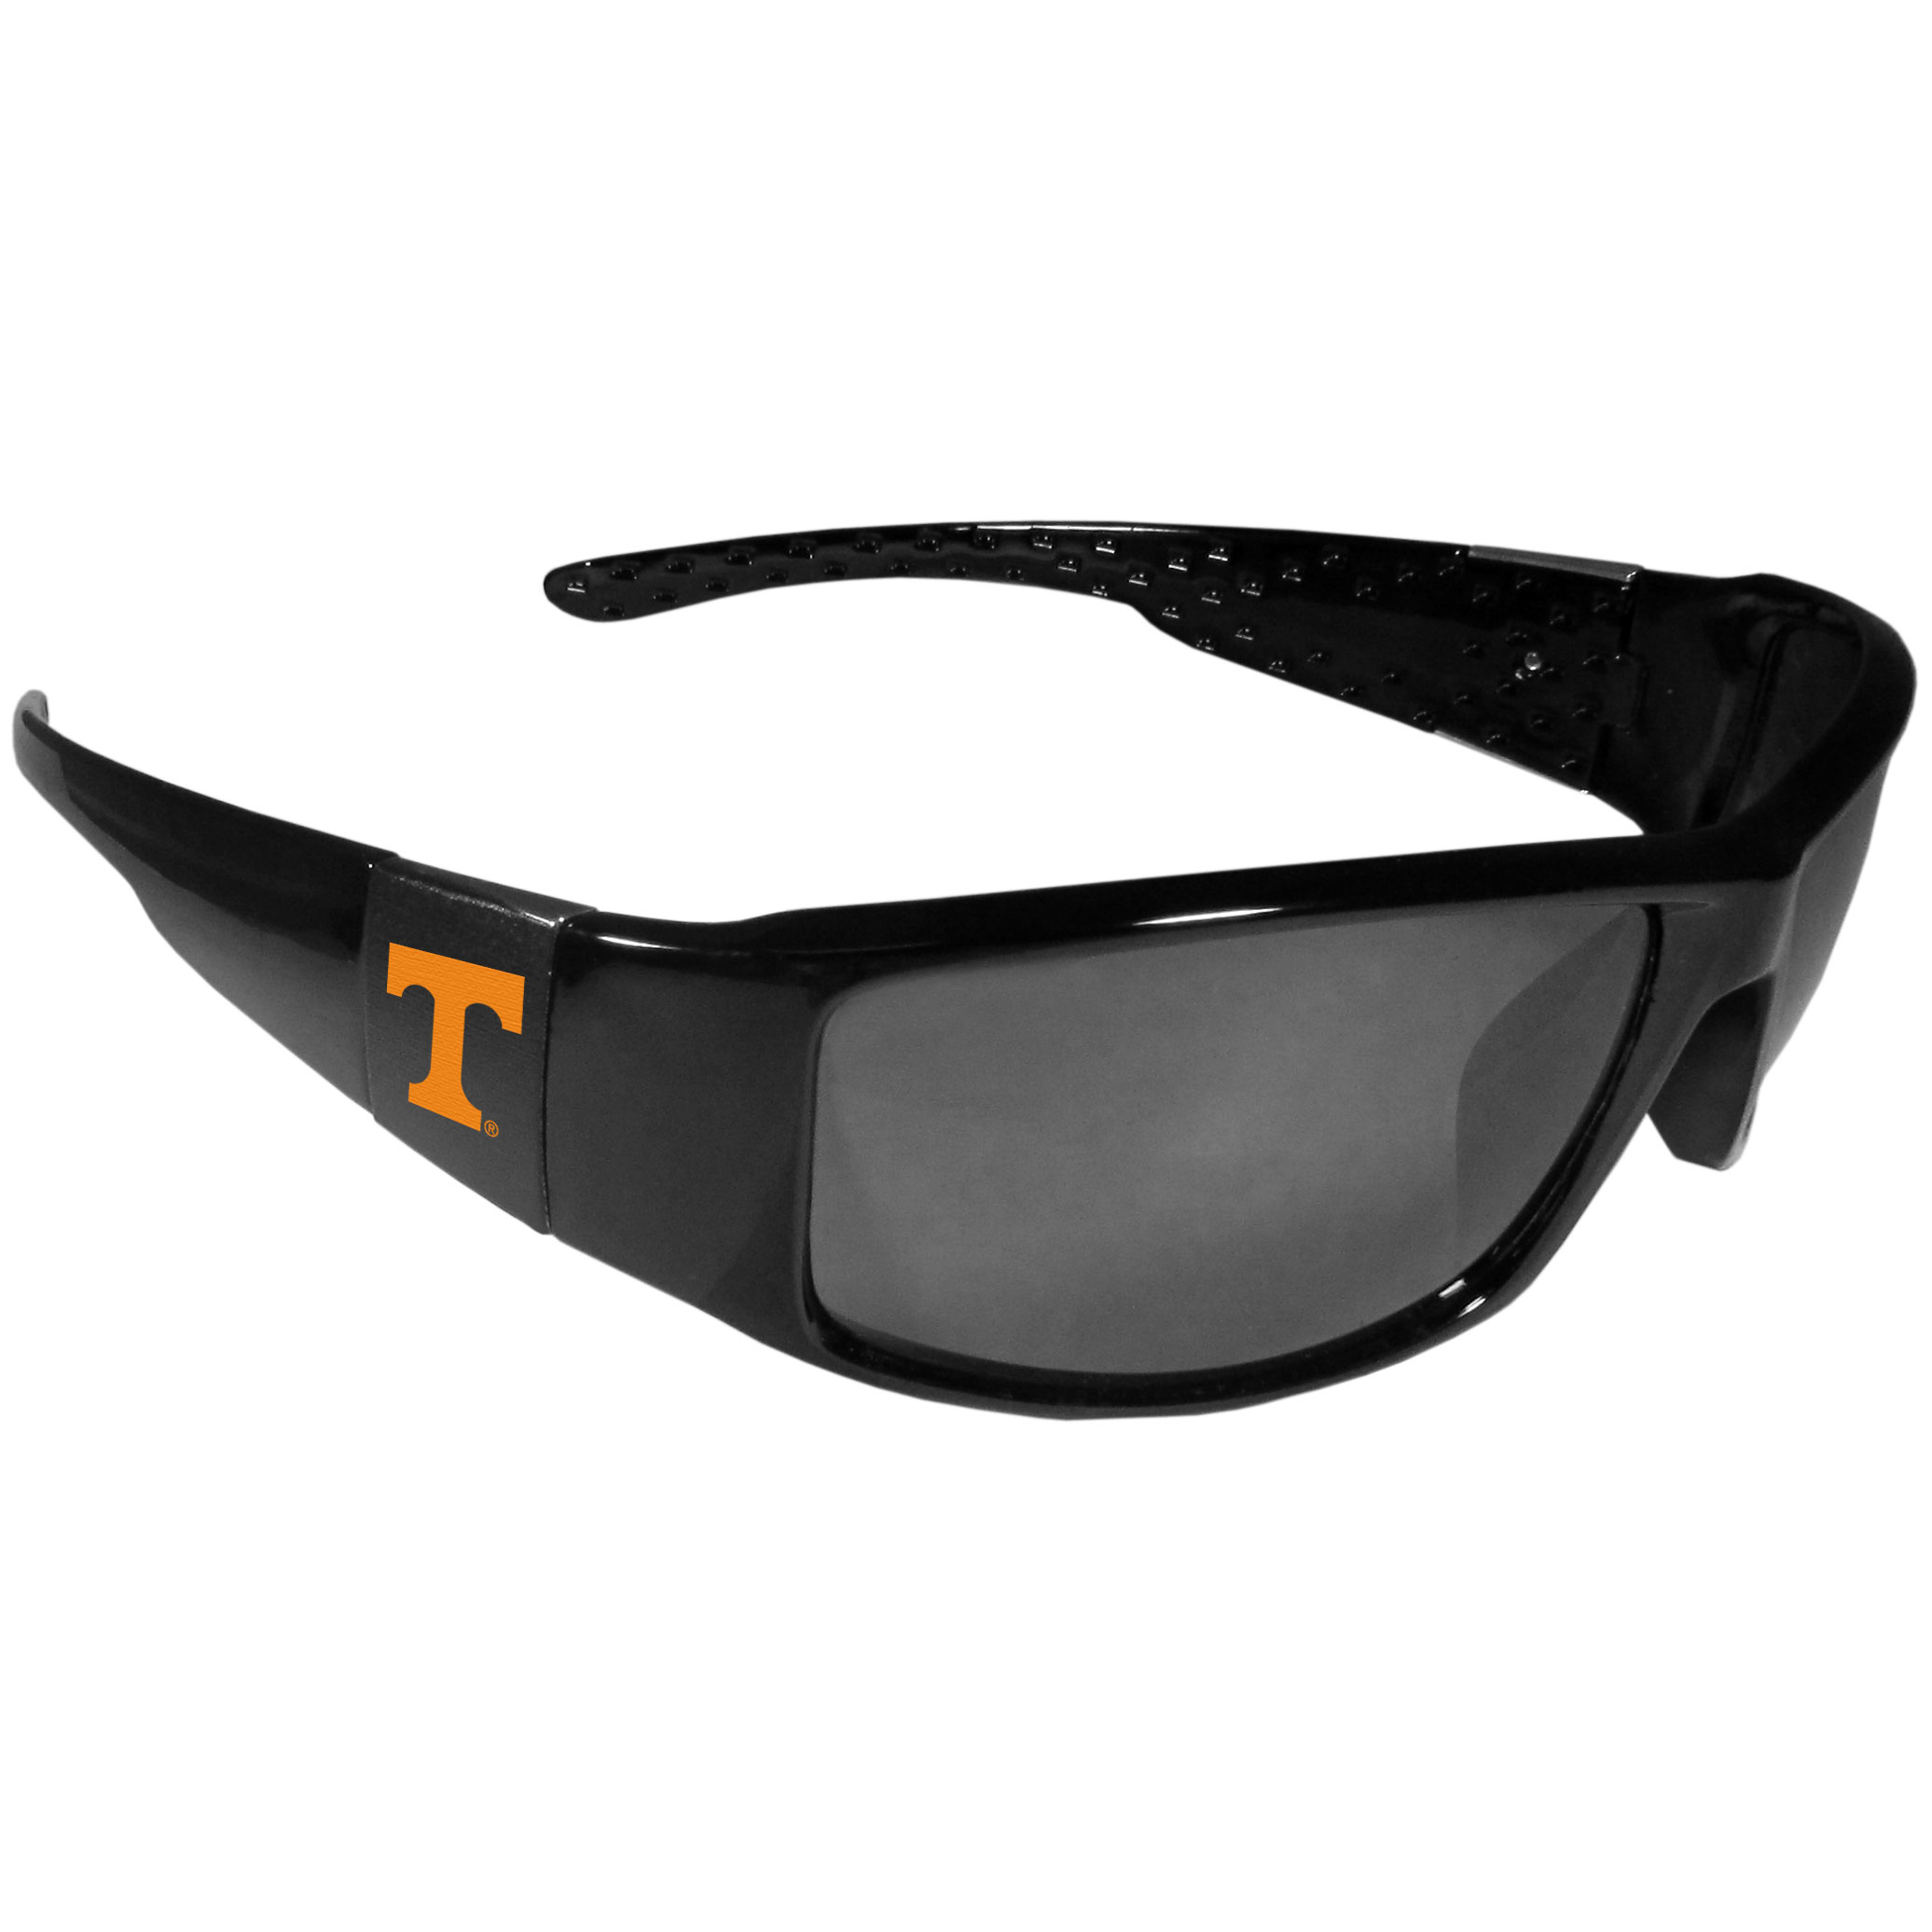 Tennessee Volunteers Black Wrap Sunglasses - These designer inspired frames have a sleek look in all black with  Tennessee Volunteers shields on each arm with a printed logo. The shades are perfect for any outdoor activity like; golfing, driving, hiking, fishing or cheering on the team at a tailgating event or at a home game day BBQ with a lens rating of 100% UVA/UVB for maximum UV protection. The high-quality frames are as durable as they are fashionable and with their classic look they are the perfect fan accessory that can be worn everyday for every occasion.